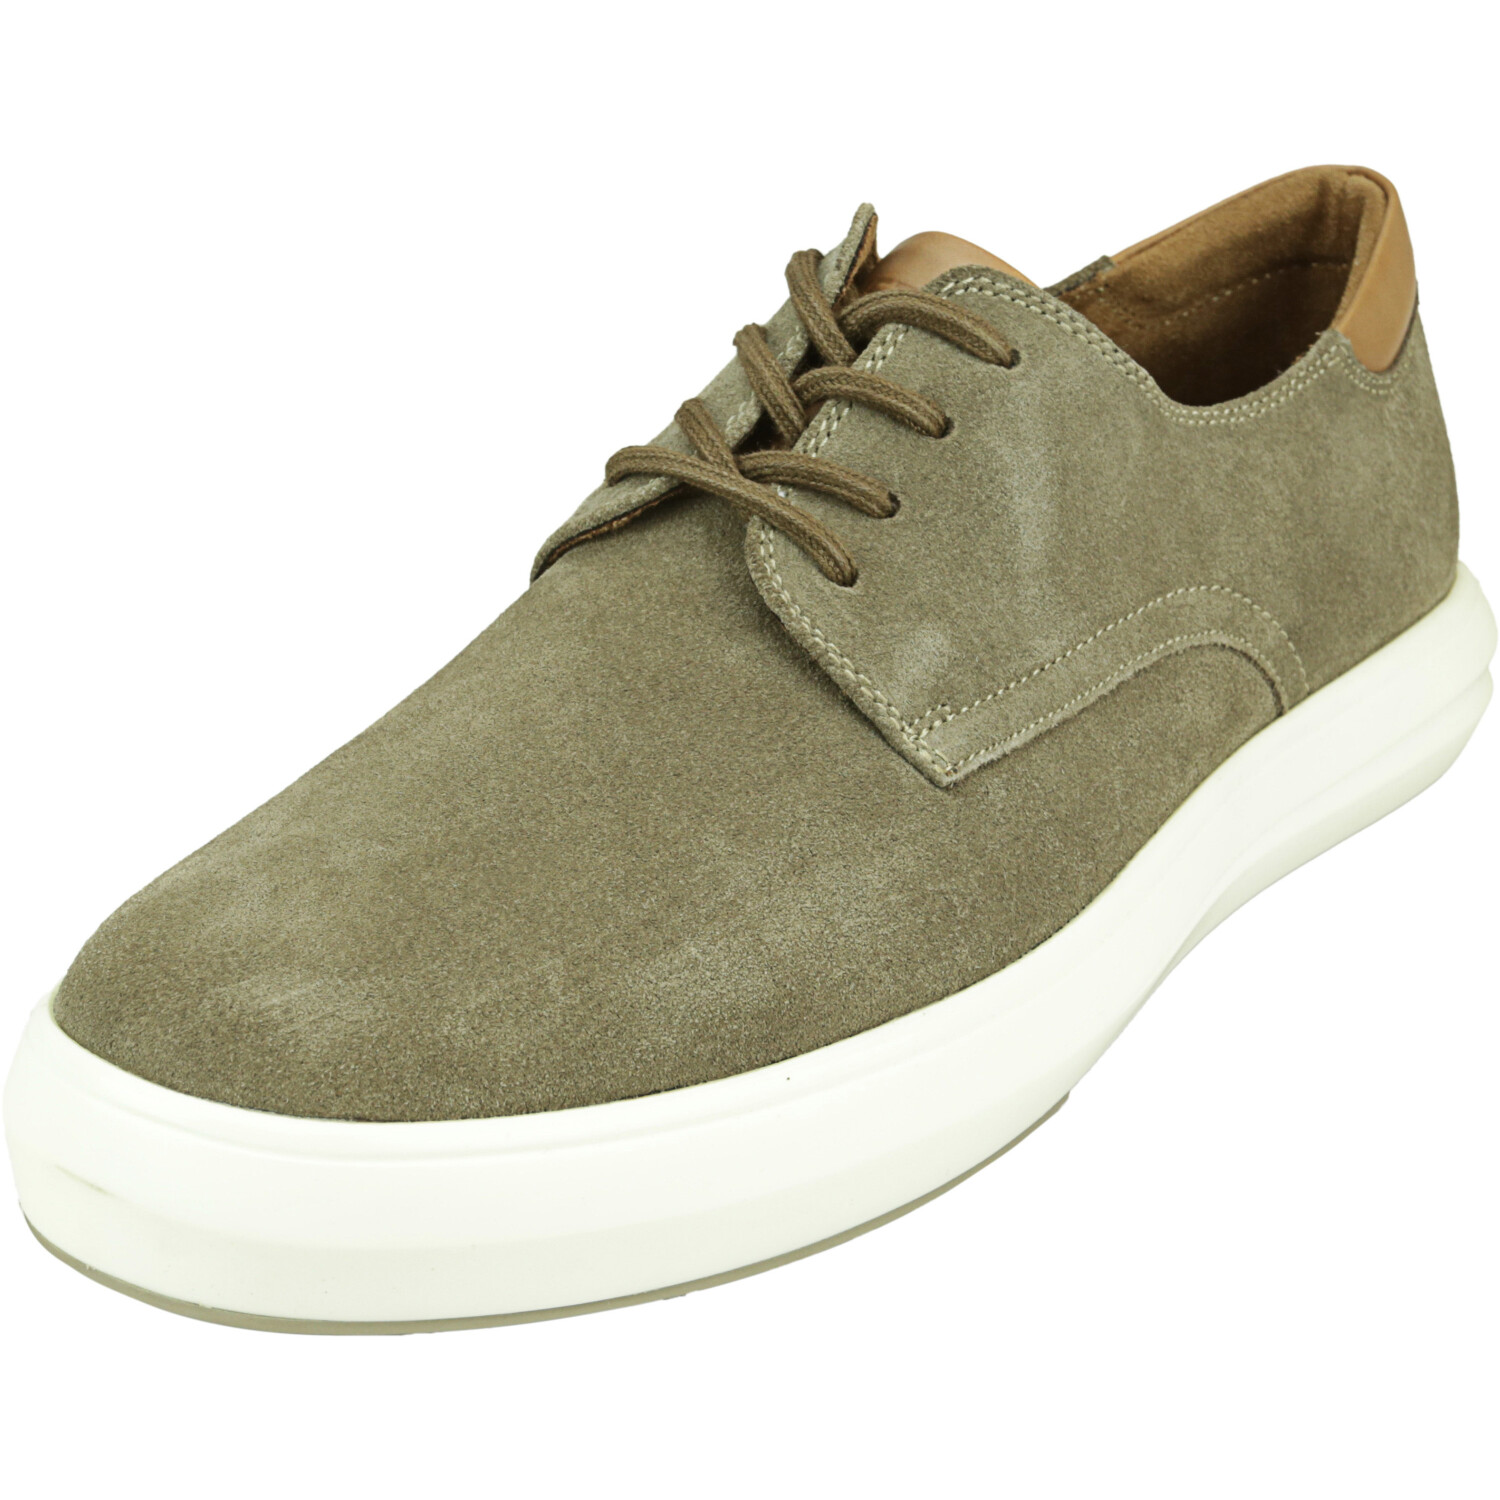 Kenneth Cole Men's The Mover Lace Up Taupe Low Top Leather Oxford - 8M